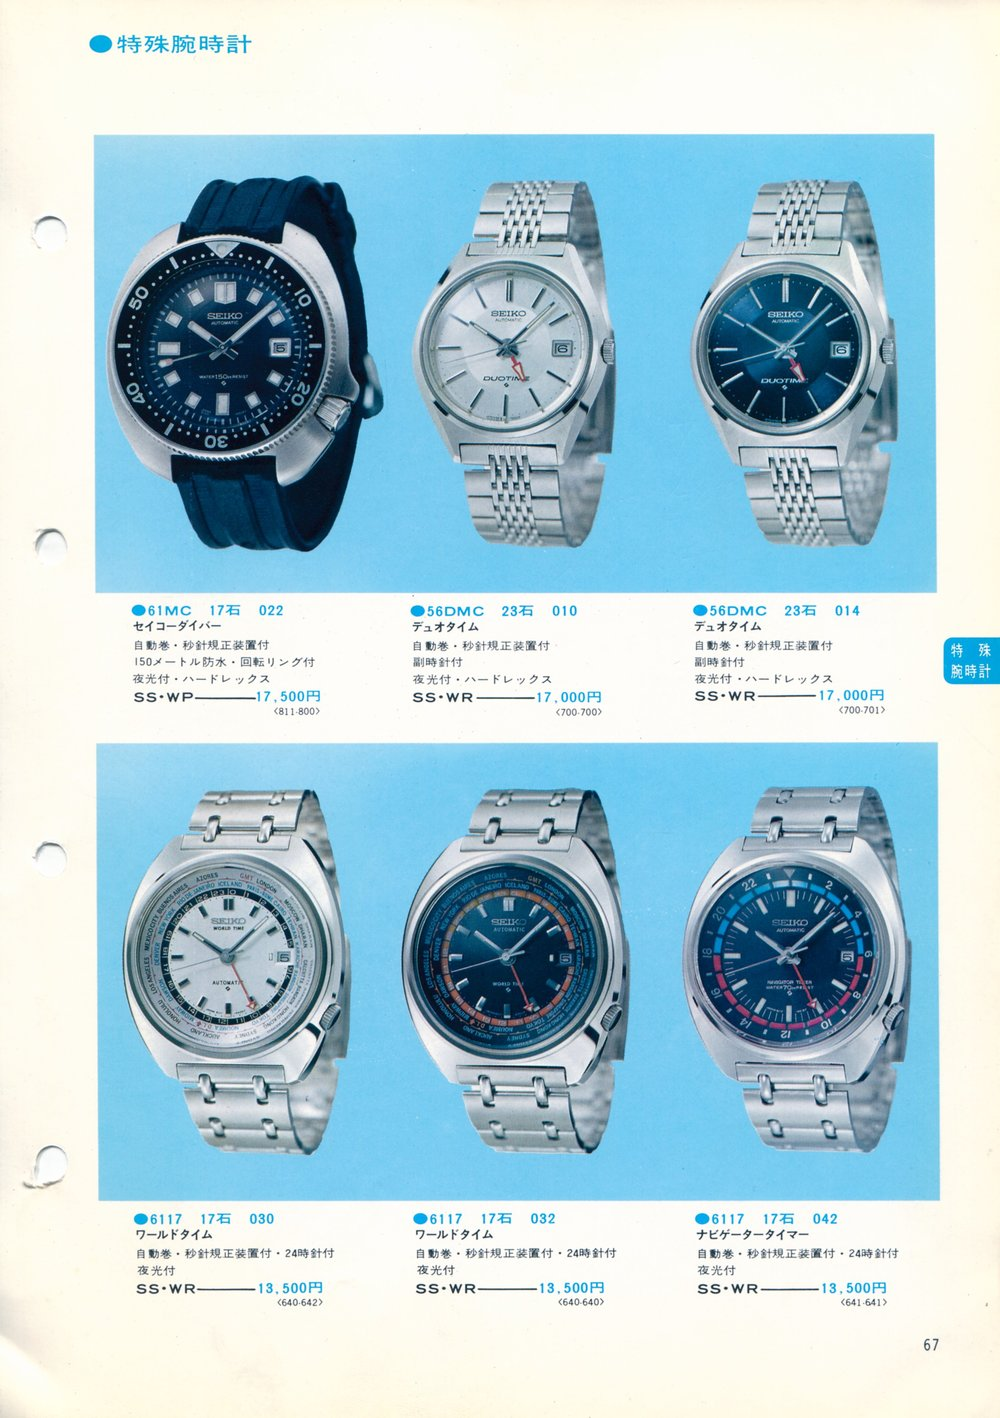 1973 Vol.1 Seiko JDM Catalog